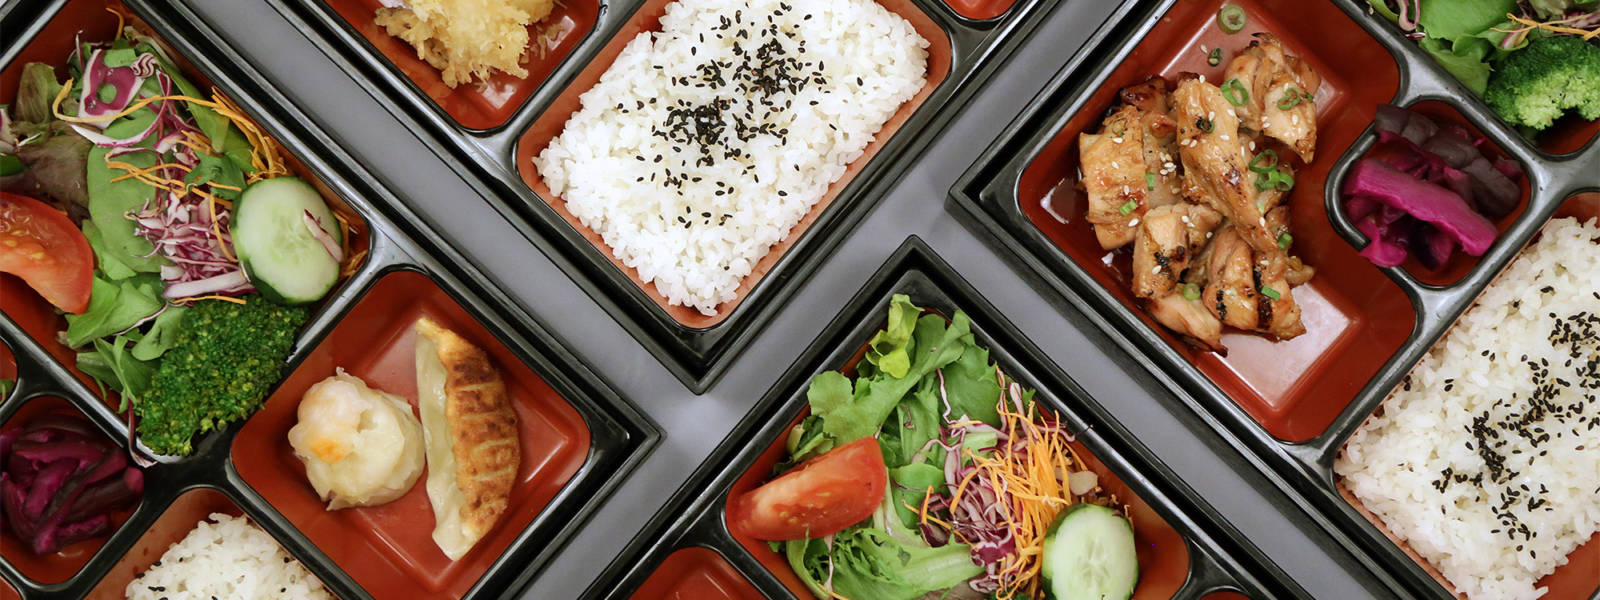 Lunch Offerings at Origami Restaurant in Minneapolis